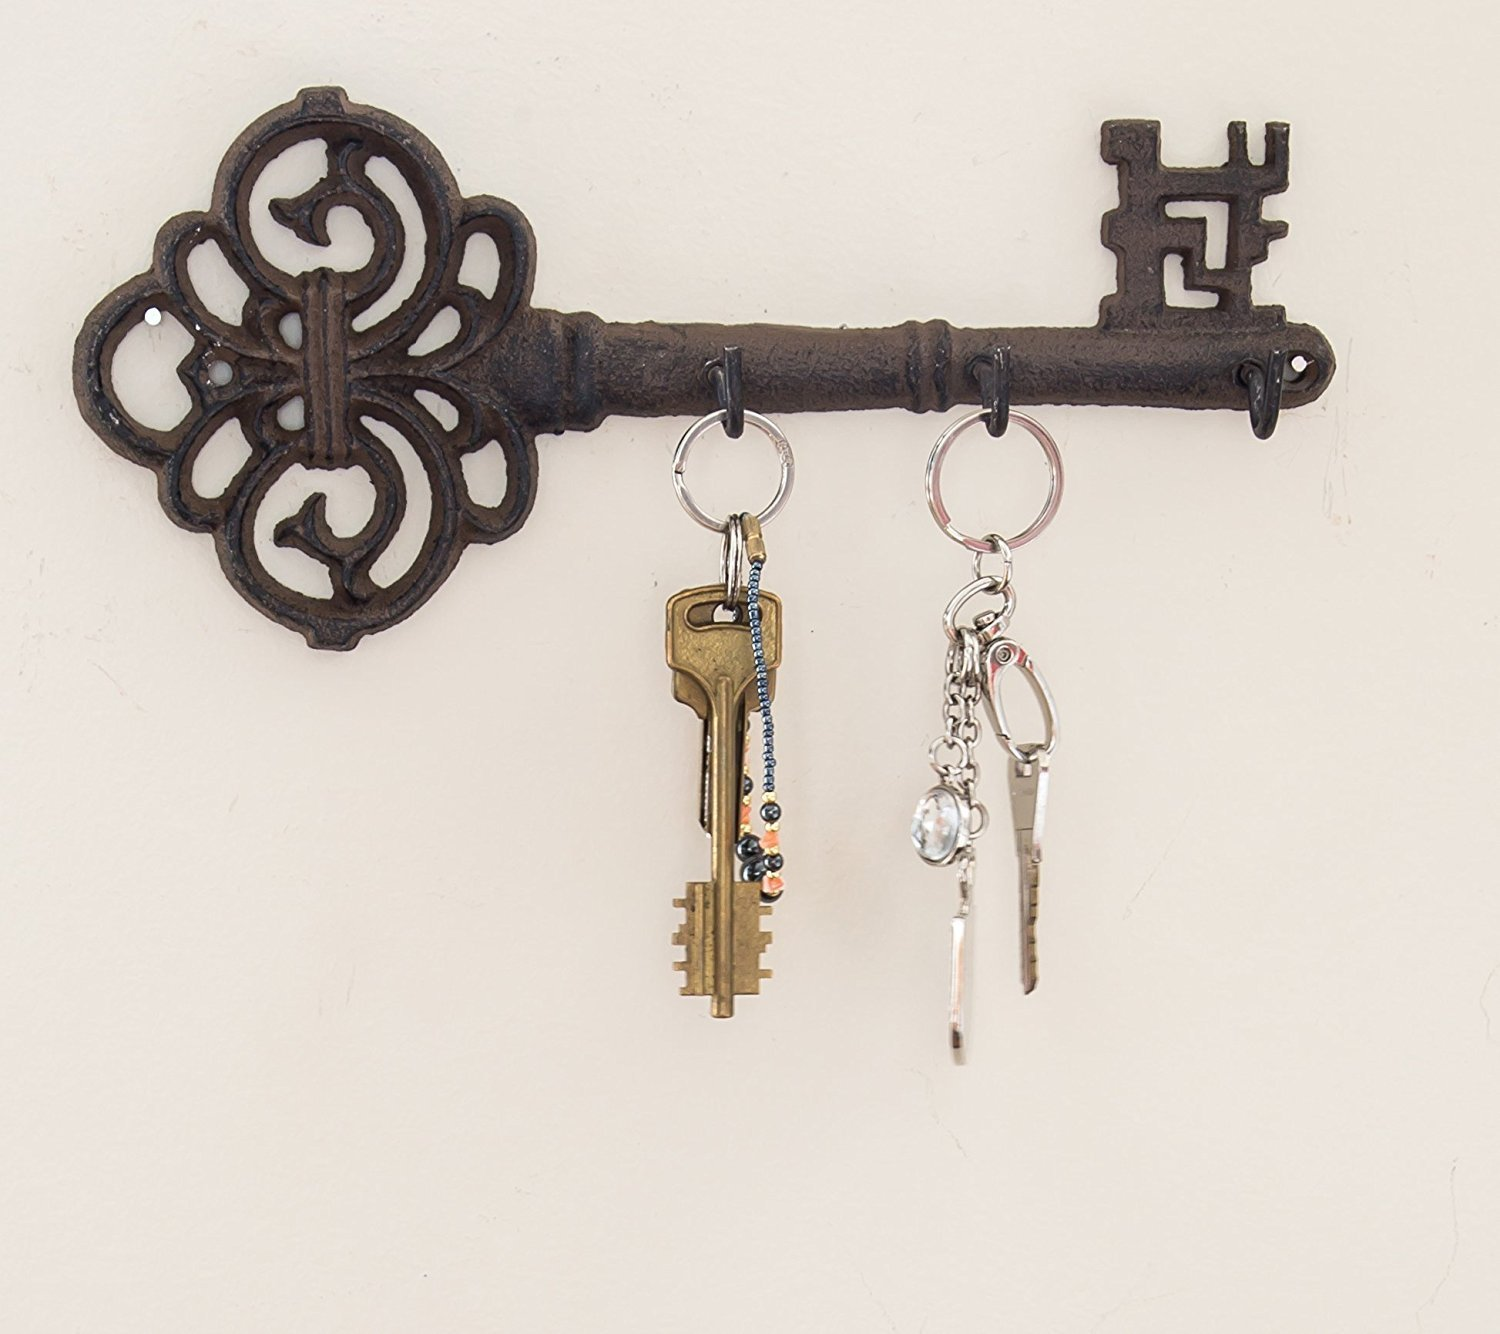 Decorative Wall Mounted Key Holder Vintage Key With 3 Hooks Wall Mounted Rustic